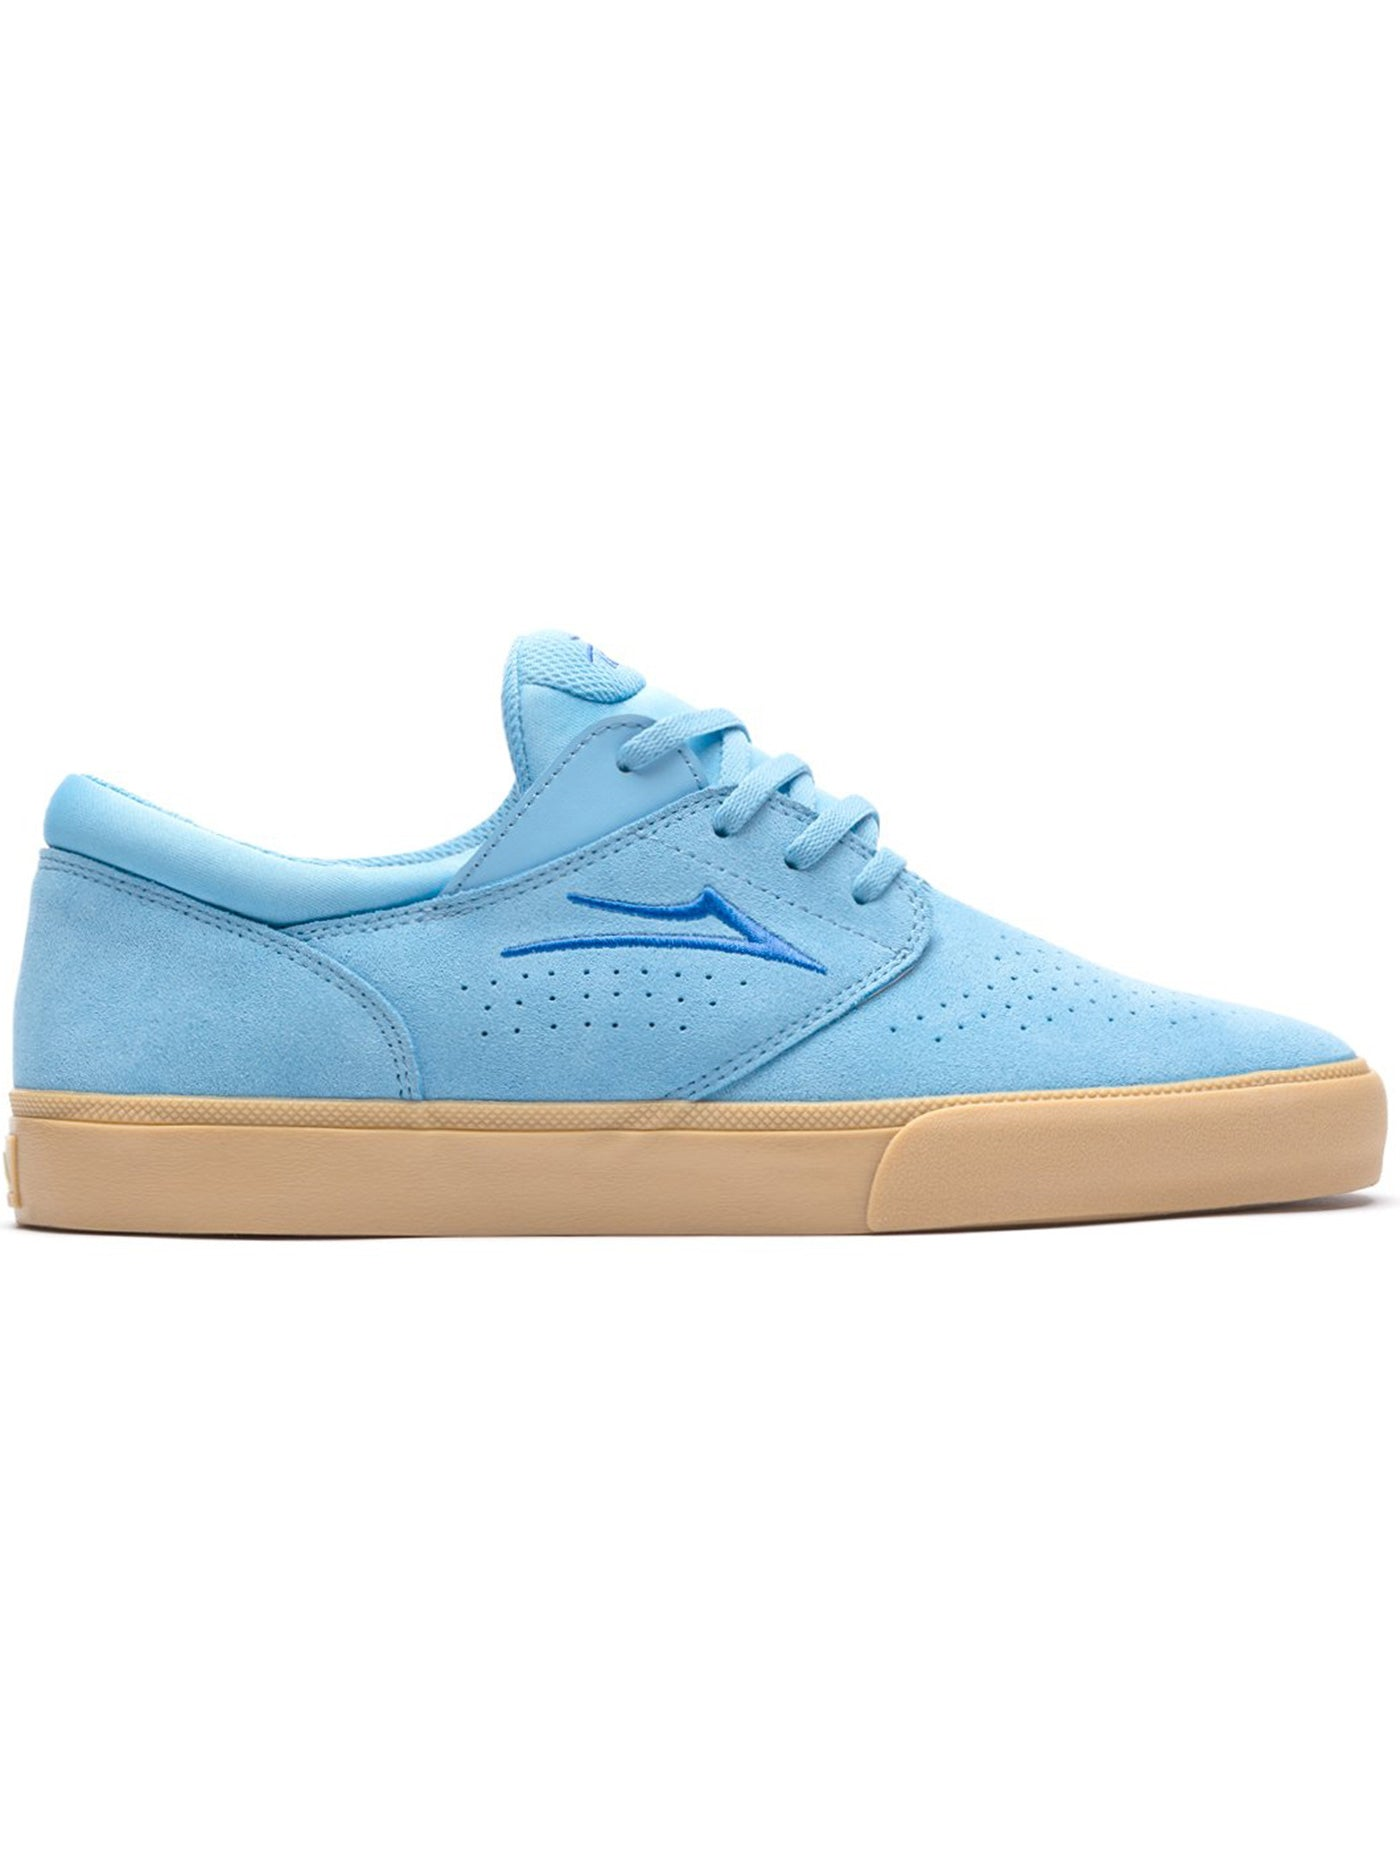 LIGHT BLUE/GUM SUE (BGS)